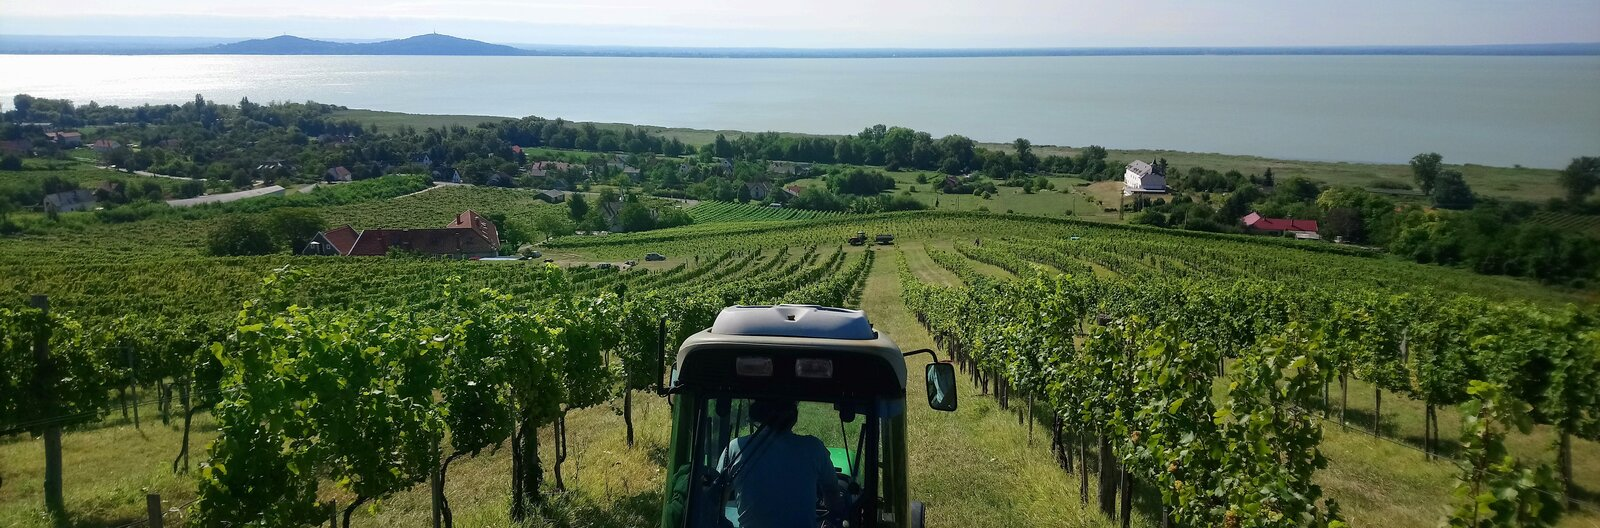 5 up-and-coming Balaton wineries to look out for